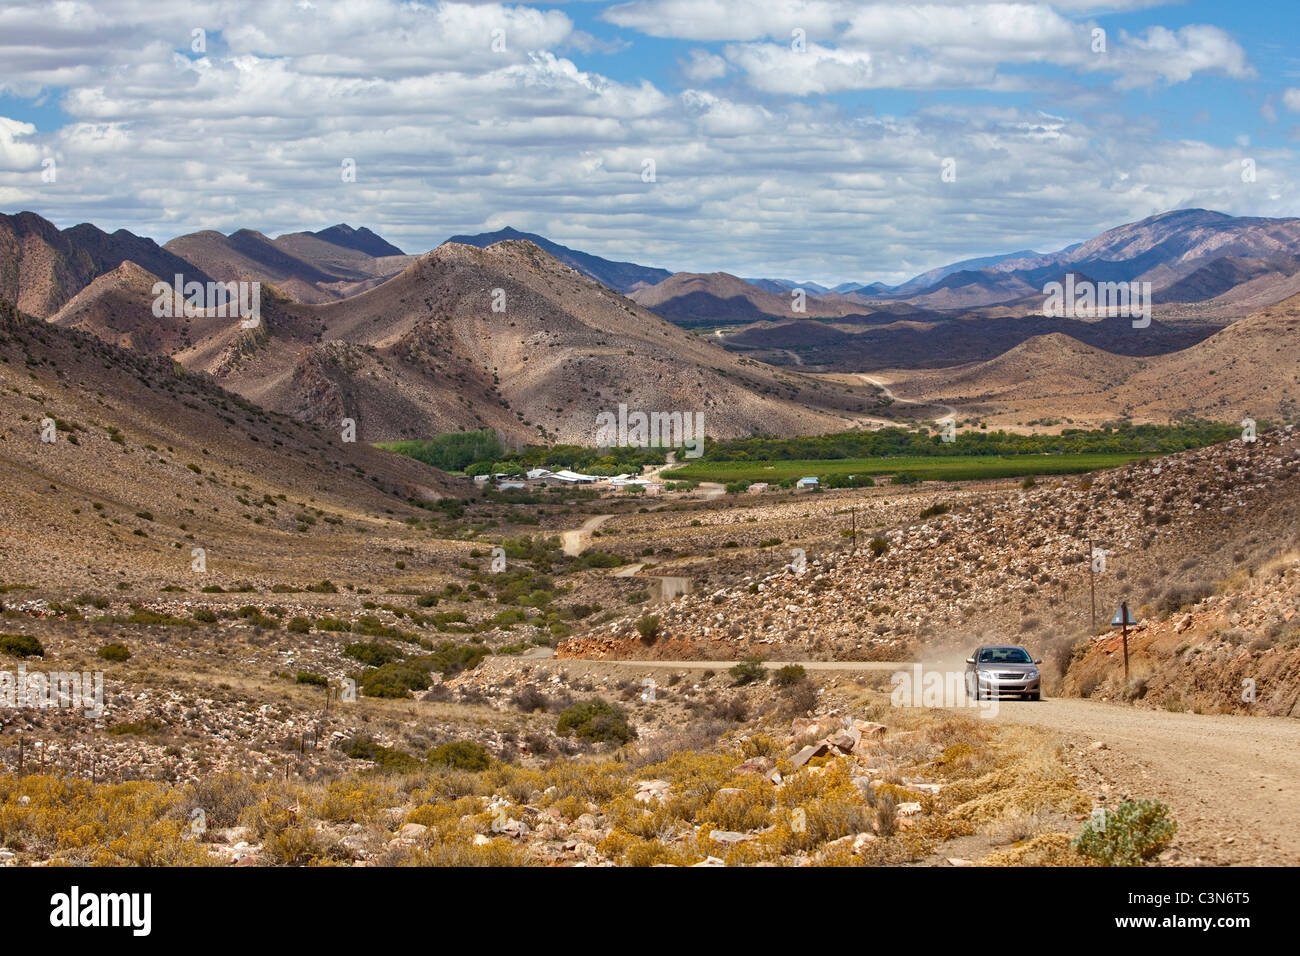 South Africa, Western Cape, Prince Albert, Gravel road to Guest farm Weltevrede. Background: fruit farm Frisgewaagd. - Stock Image